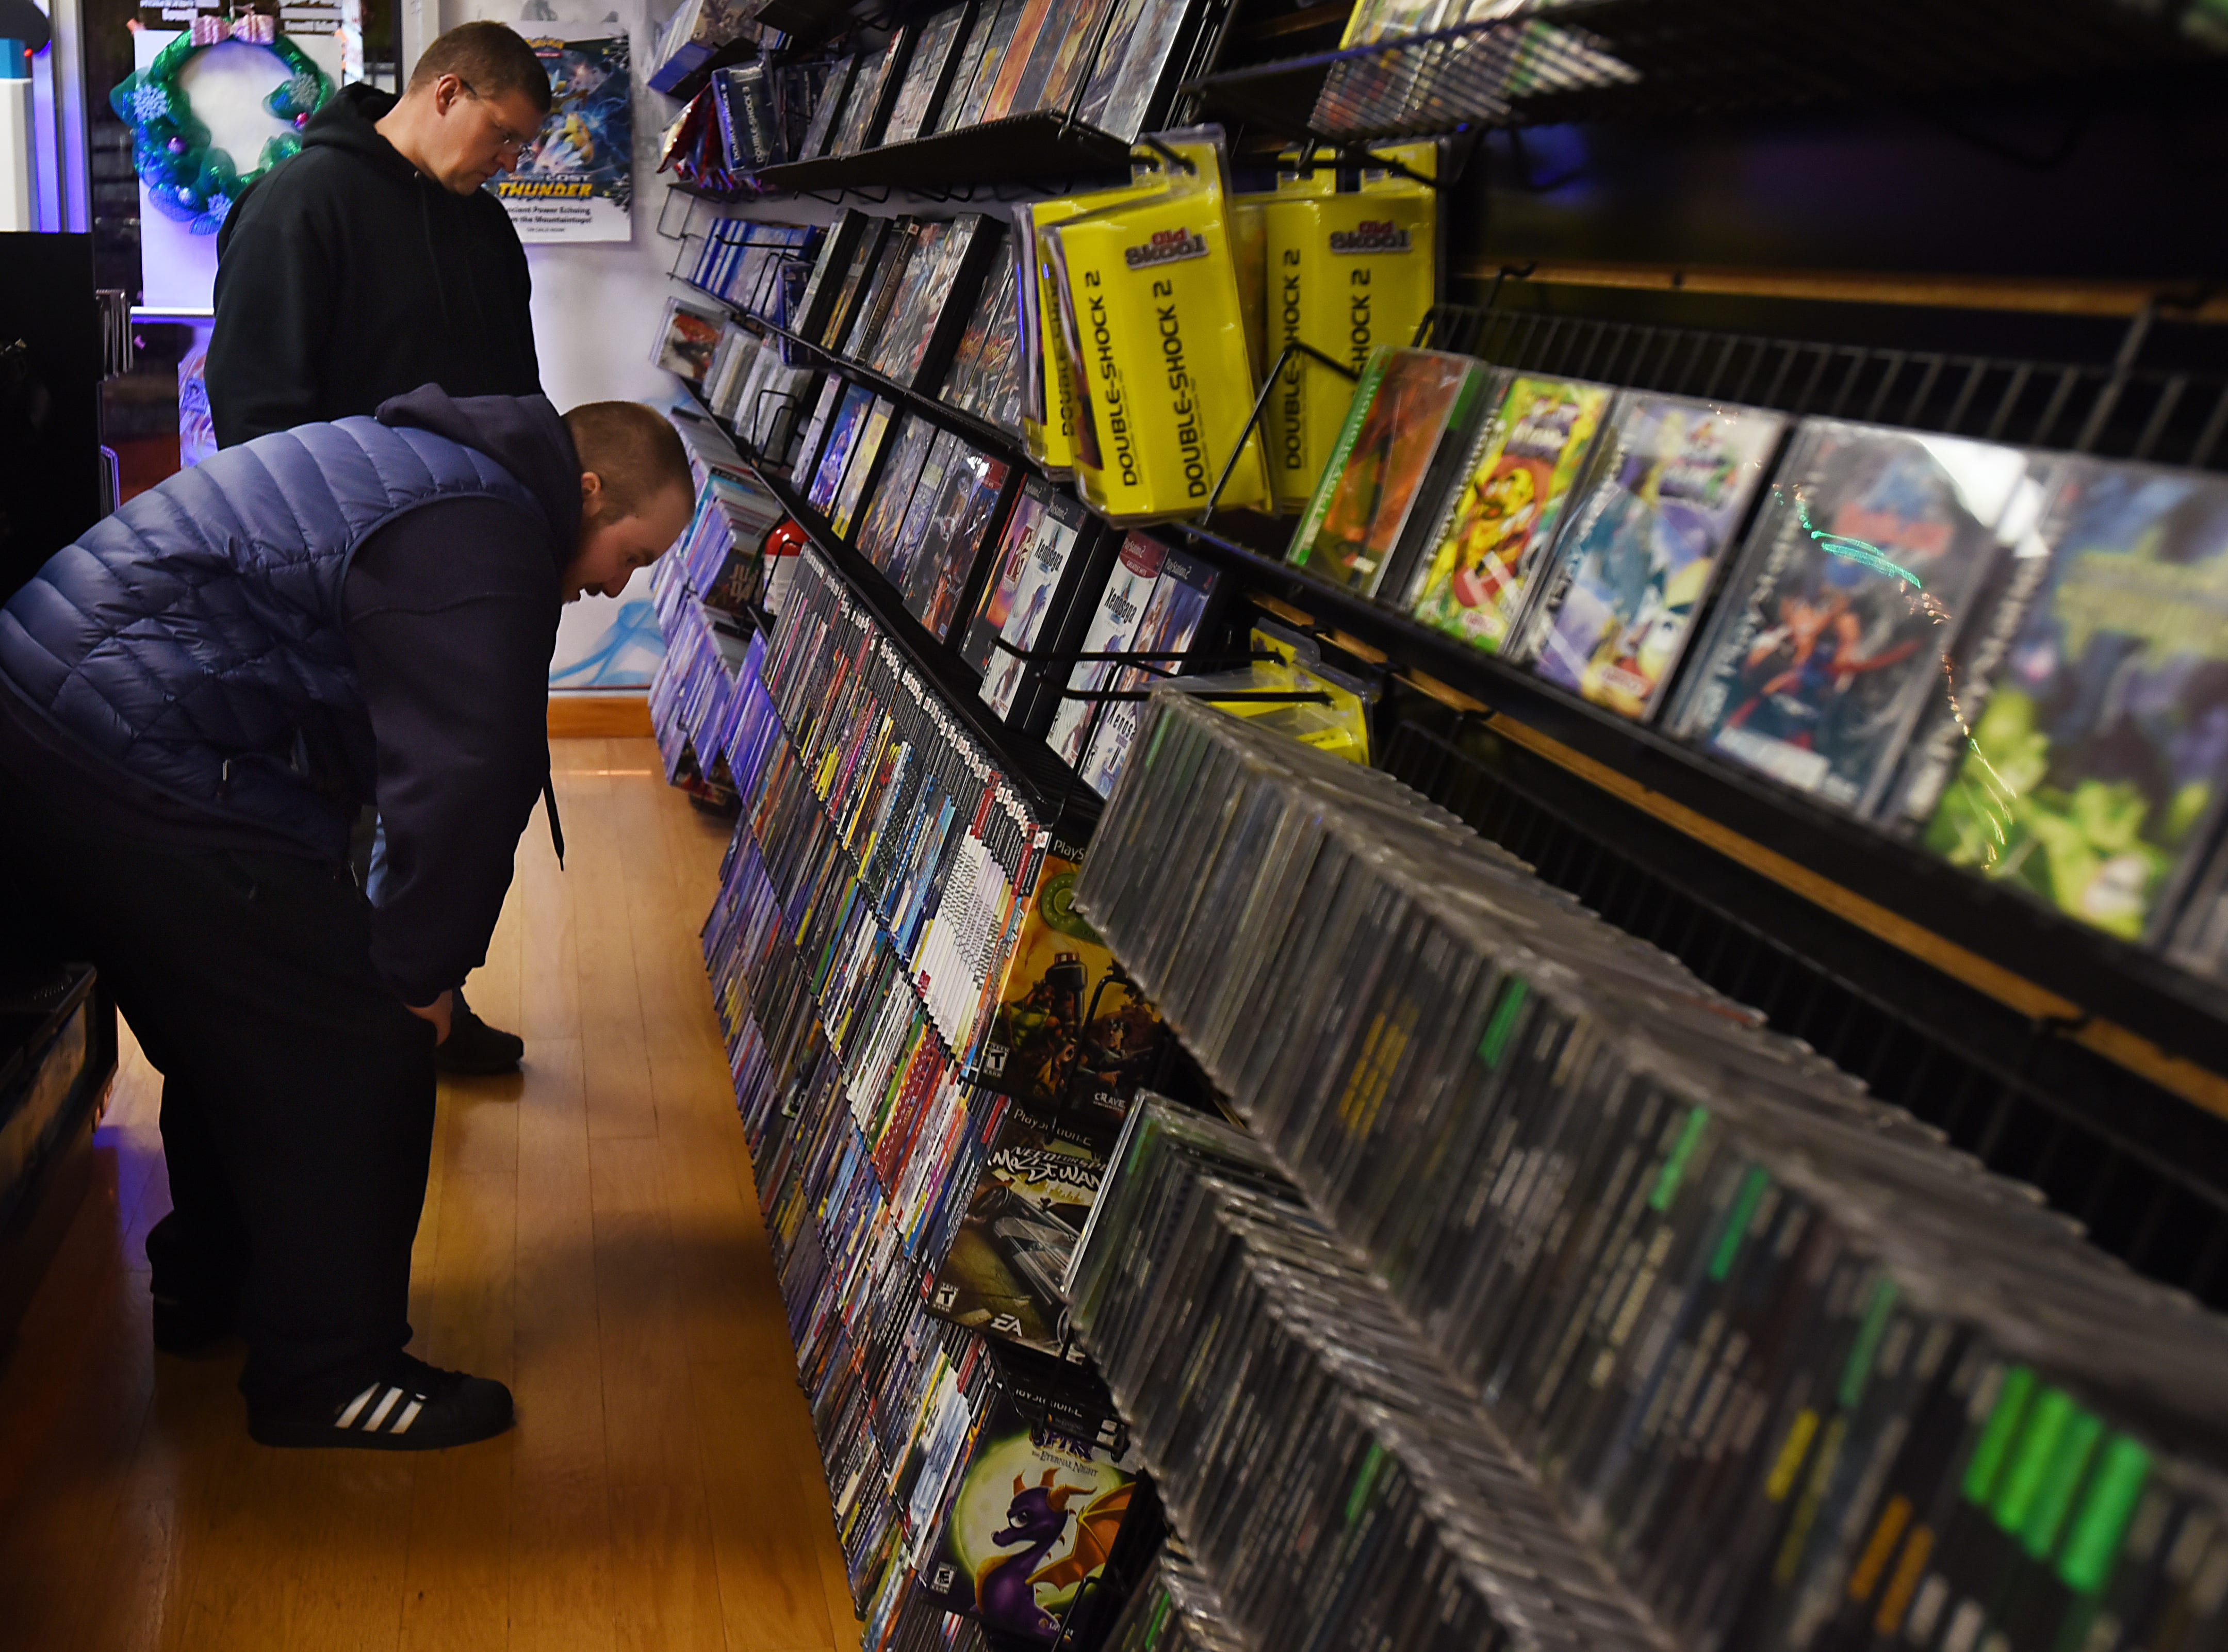 Customers browse the racks at Level 1 Games in Pompton Plains on Friday November 30, 2018.